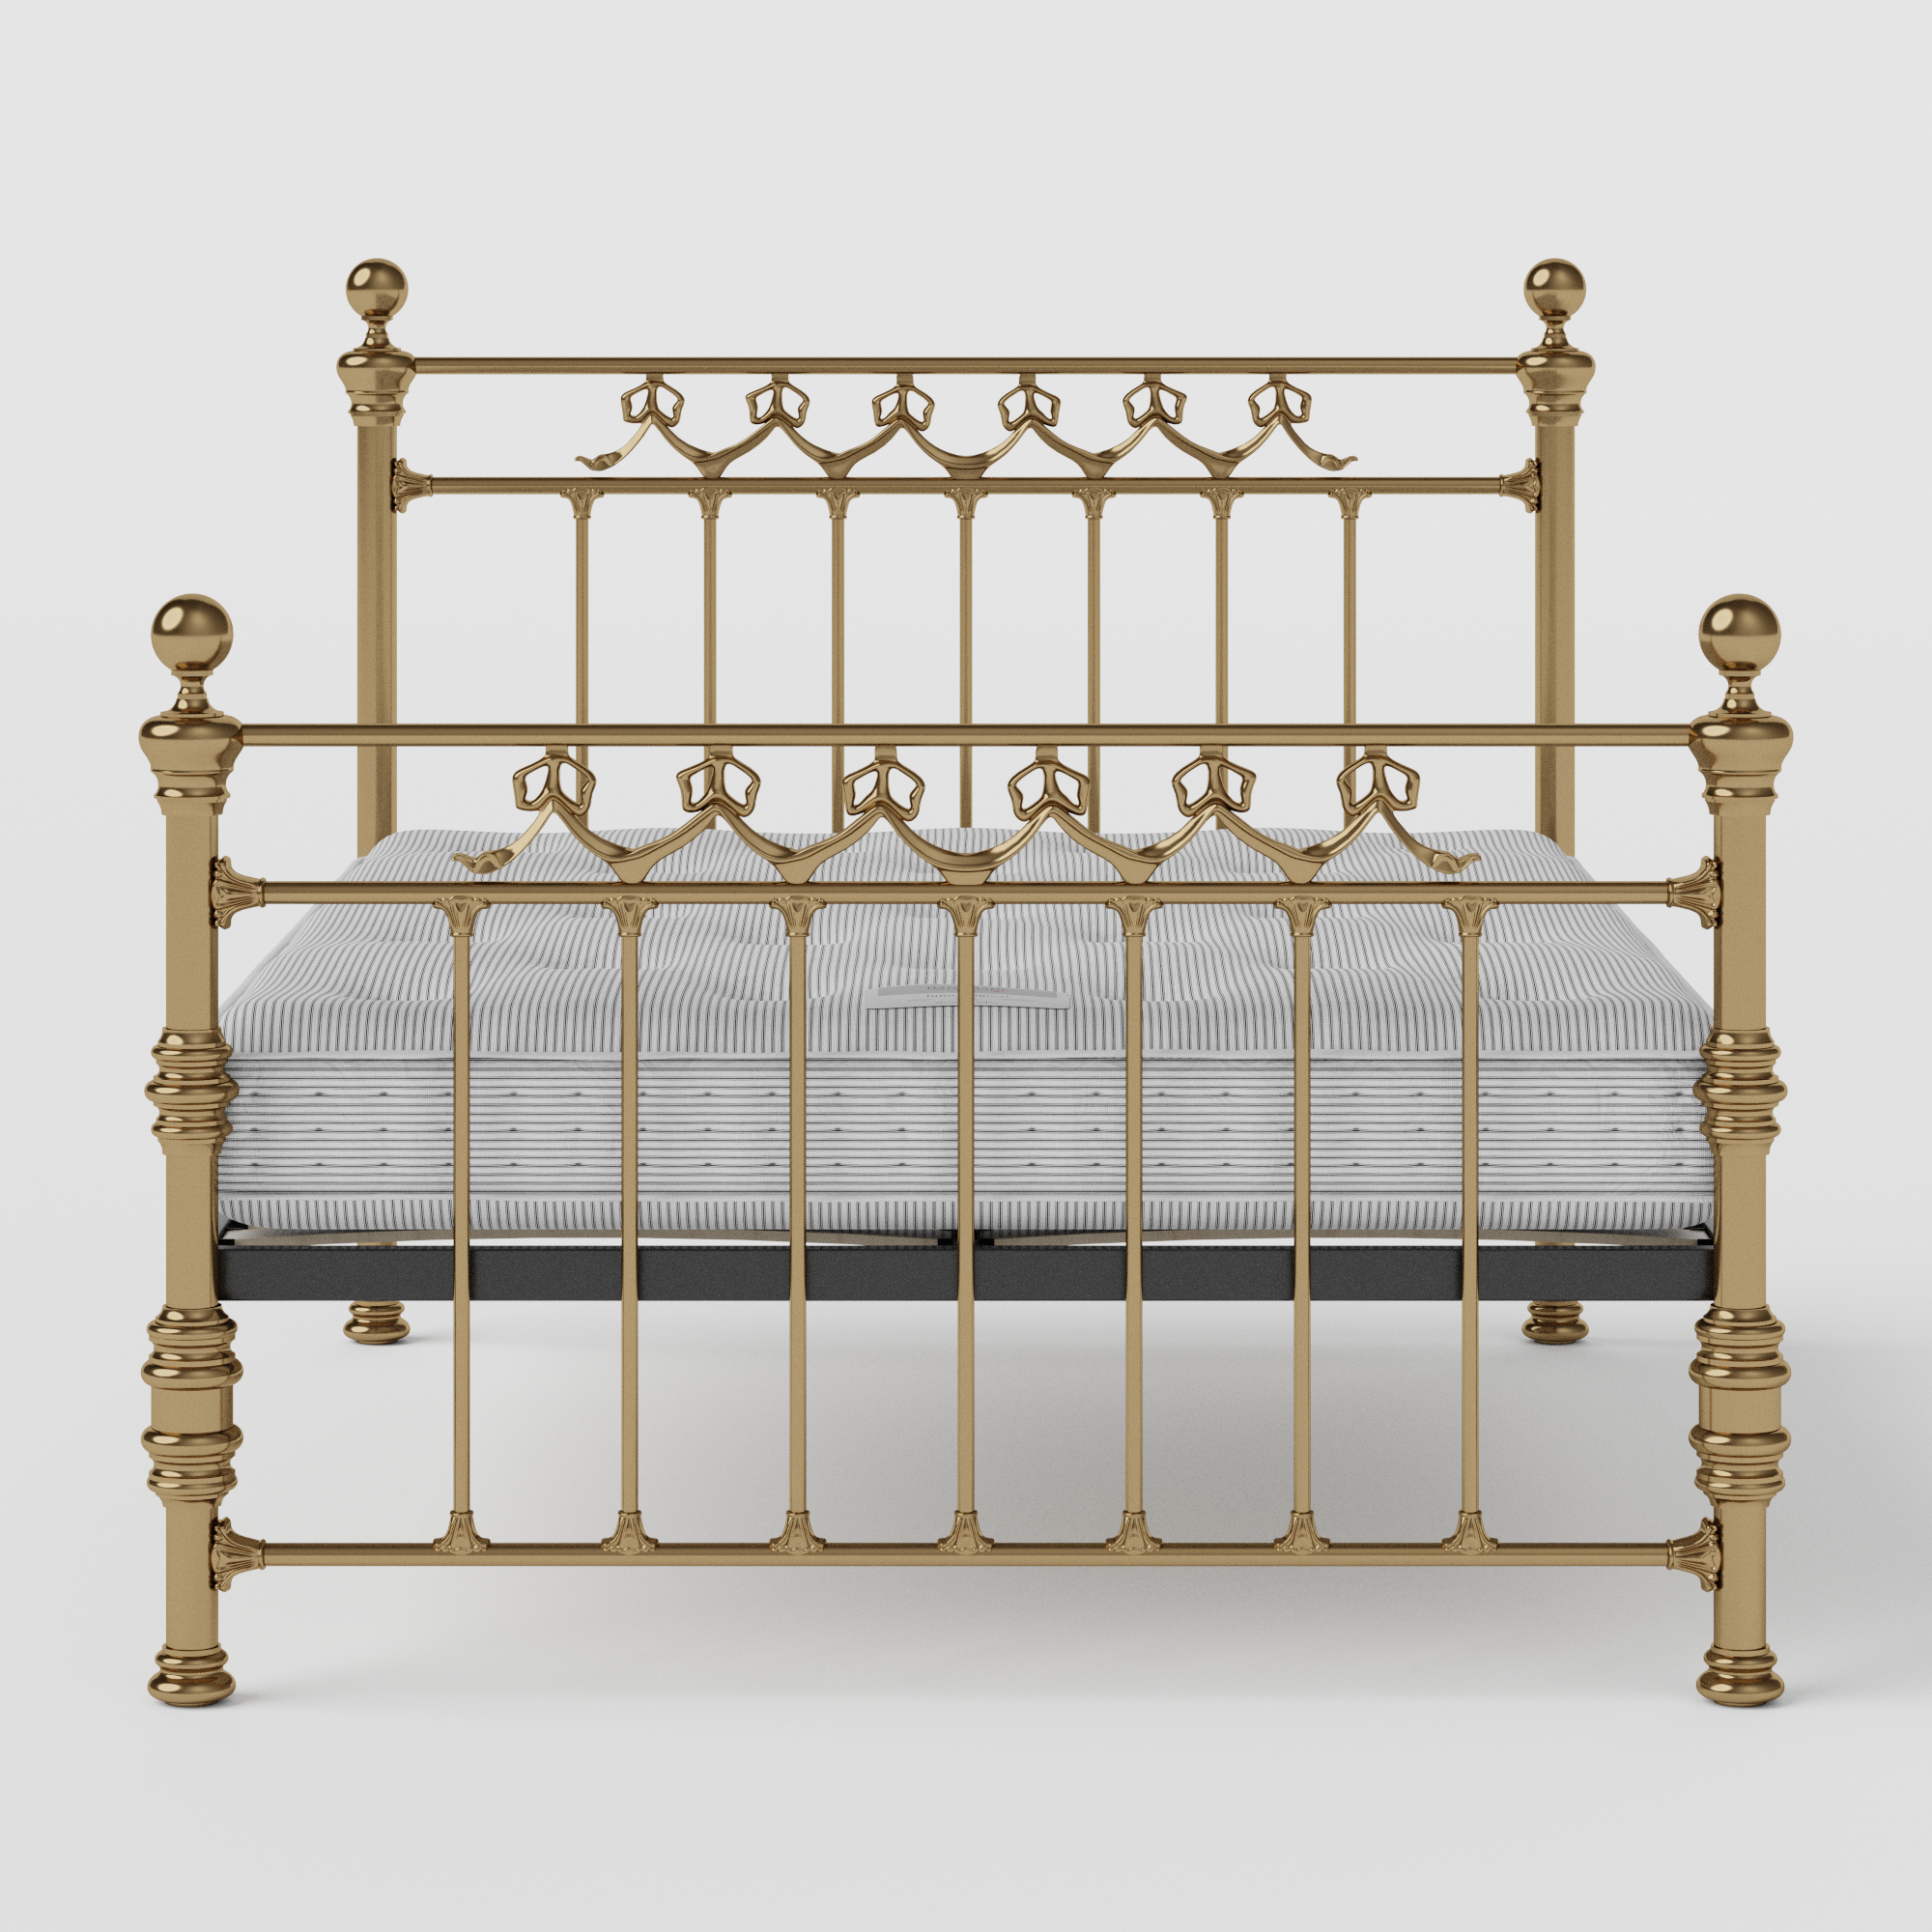 Braemore brass bed with Juno mattress